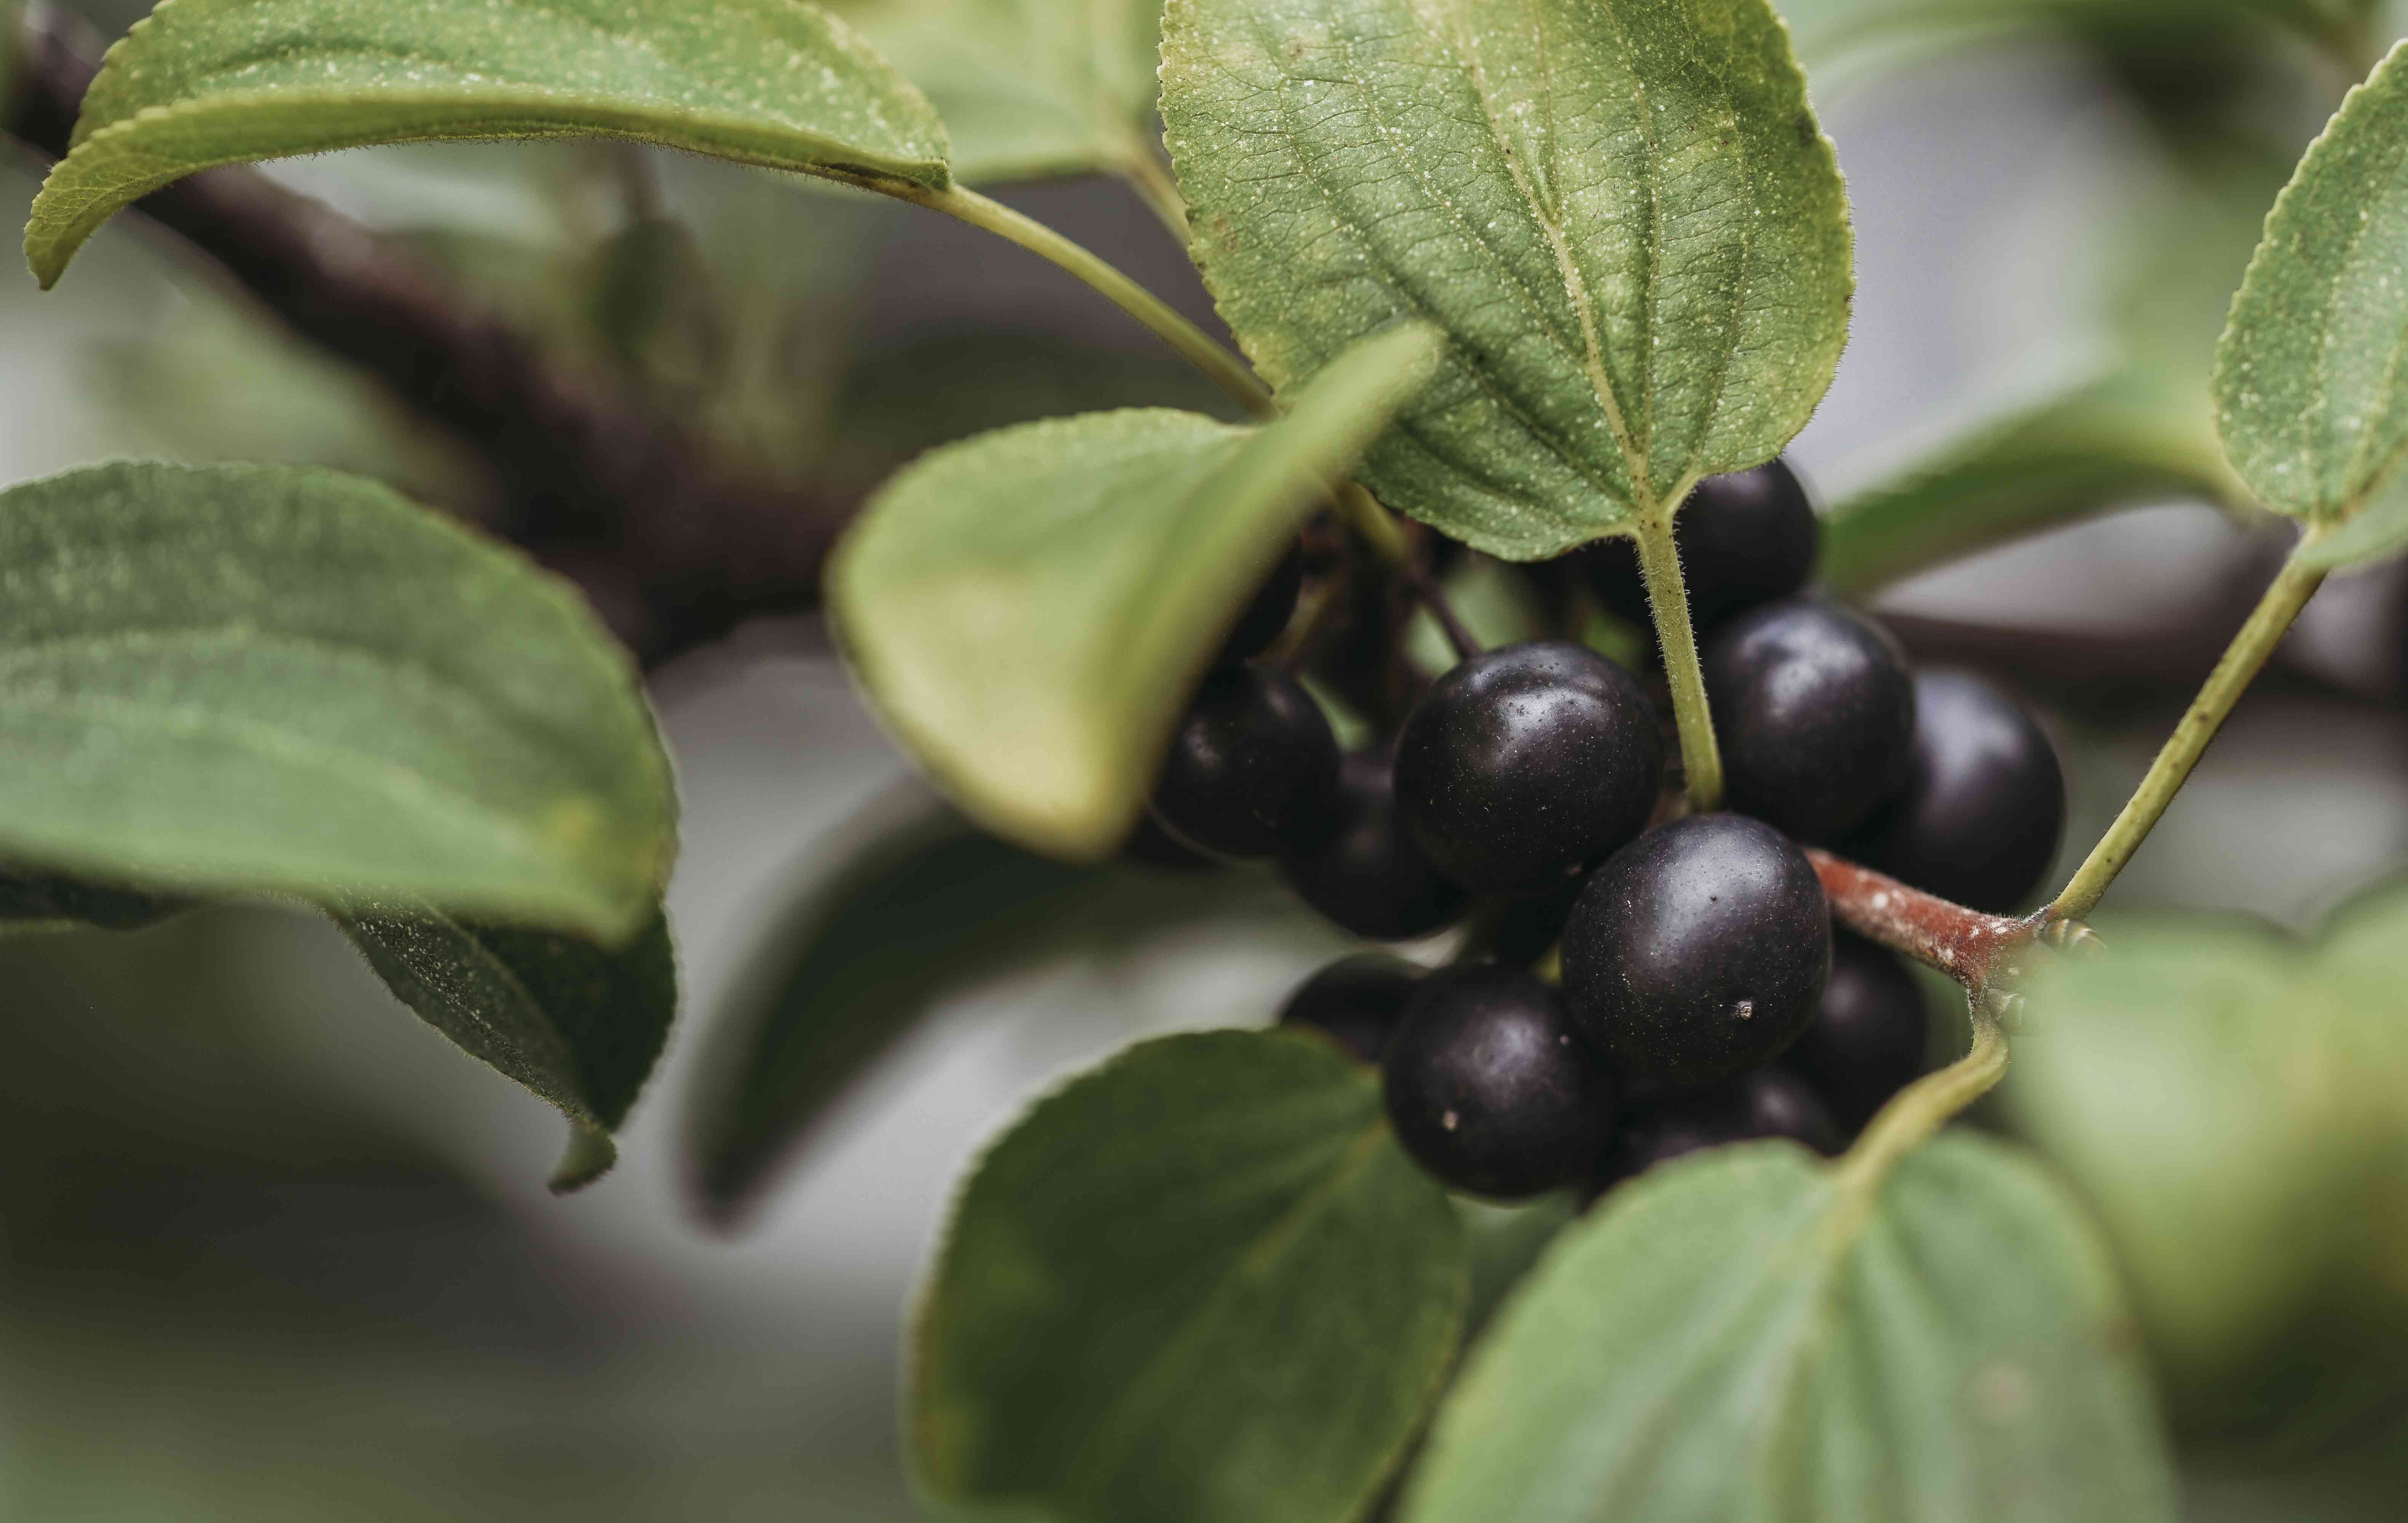 Close-up of huckleberries growing on plant in farm